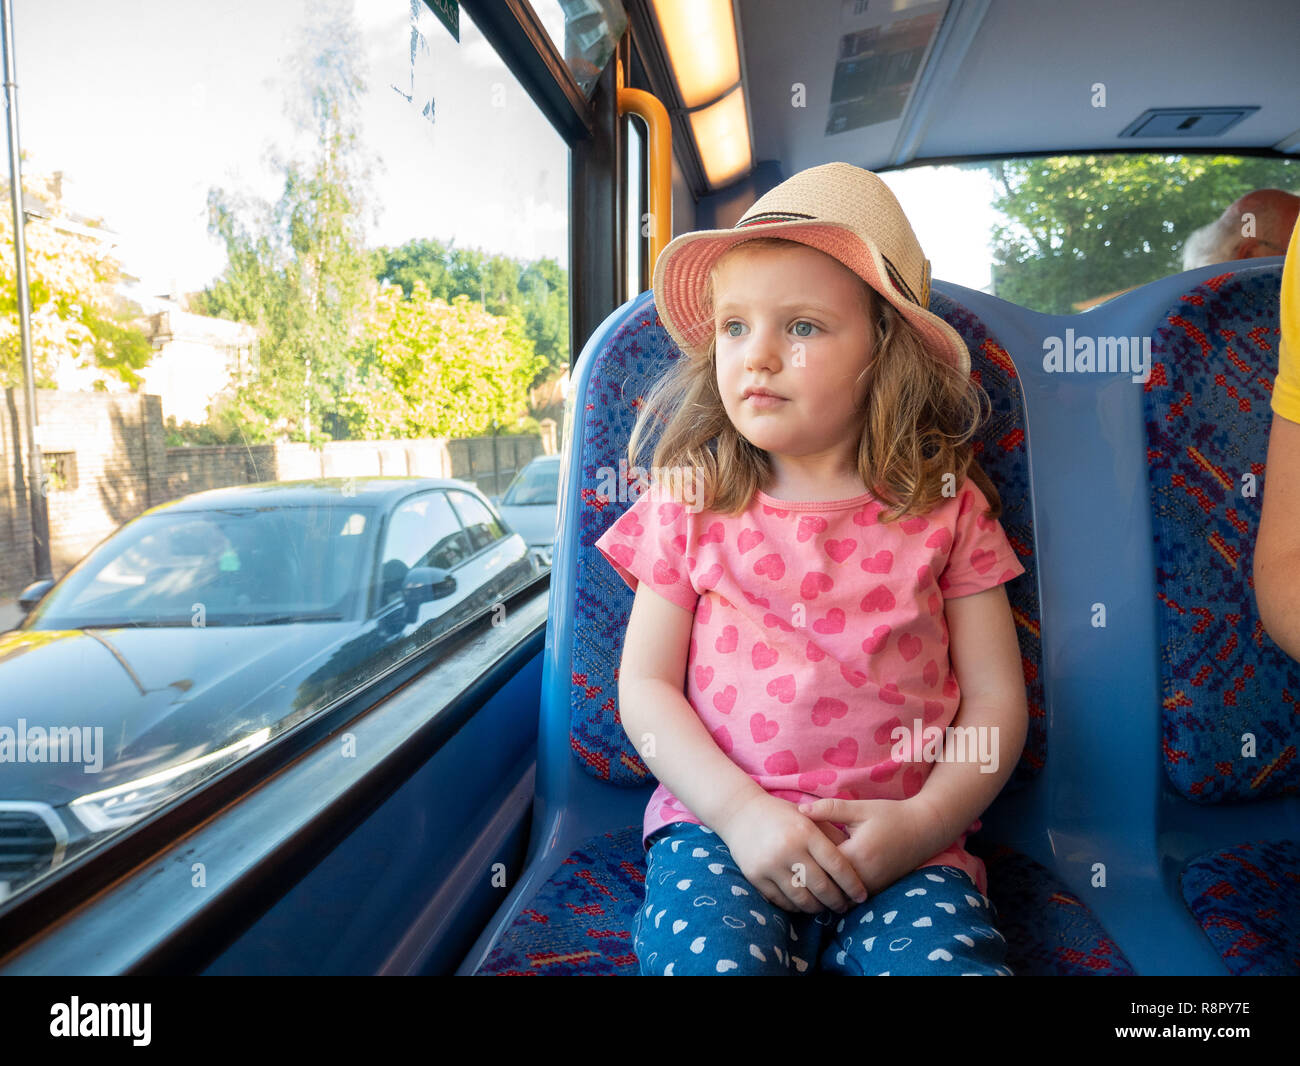 Young three year old girl travelling by bus, London, UK - Stock Image